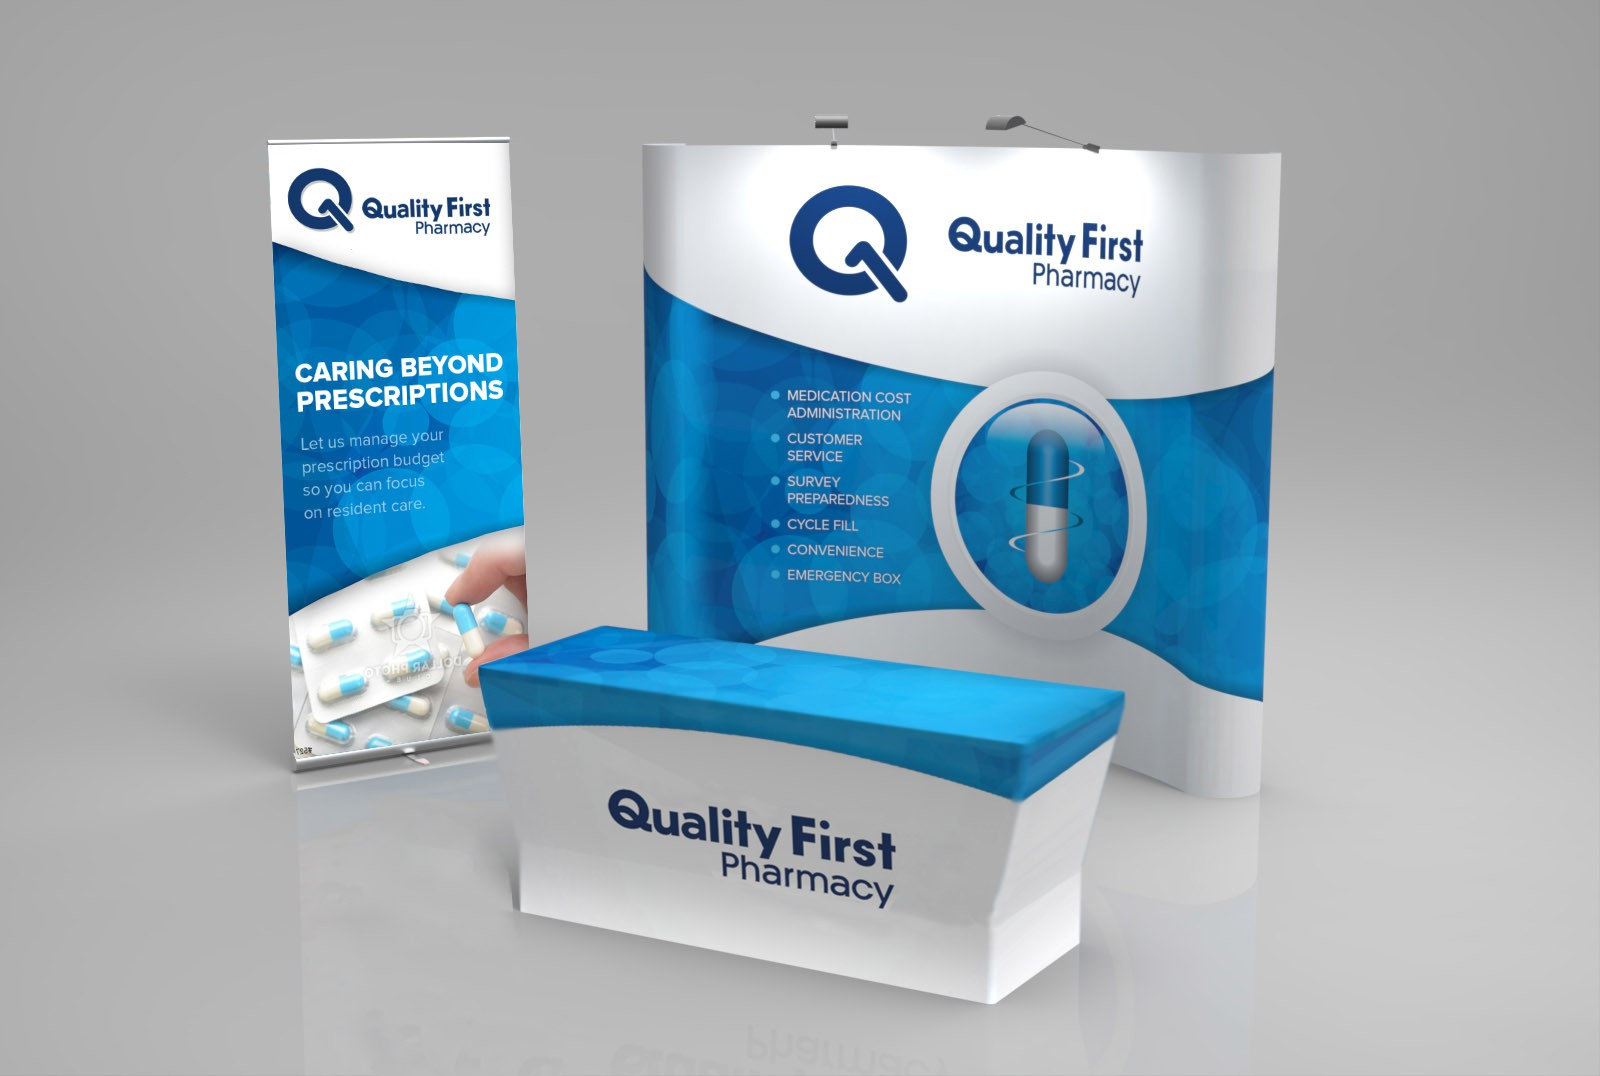 Trade Show Booth Design for Pharmaceutical Company